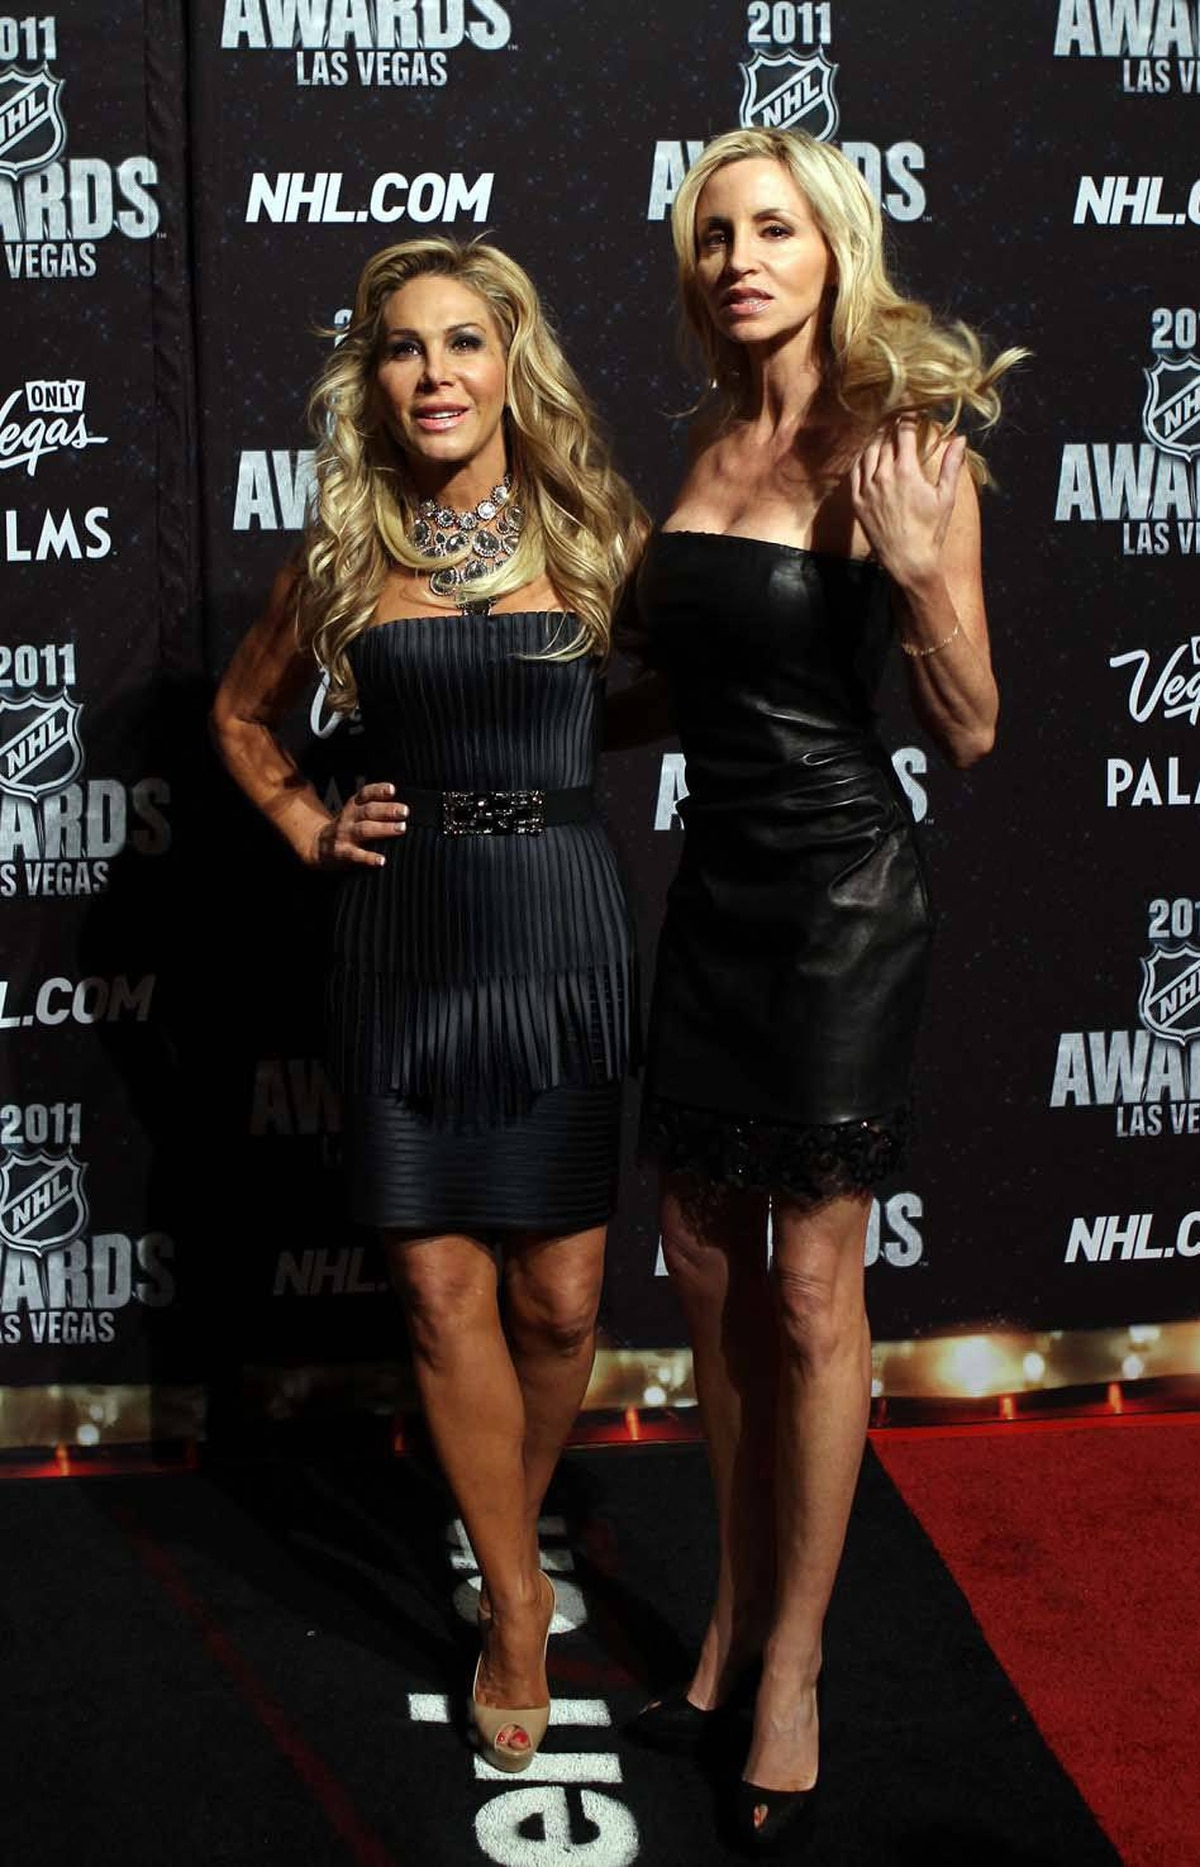 (L-R) TV personality's Adrienne Maloof and Camille Grammer arrive at the 2011 NHL Awards at the Palms Casino Resort June 22, 2011 in Las Vegas, Nevada.